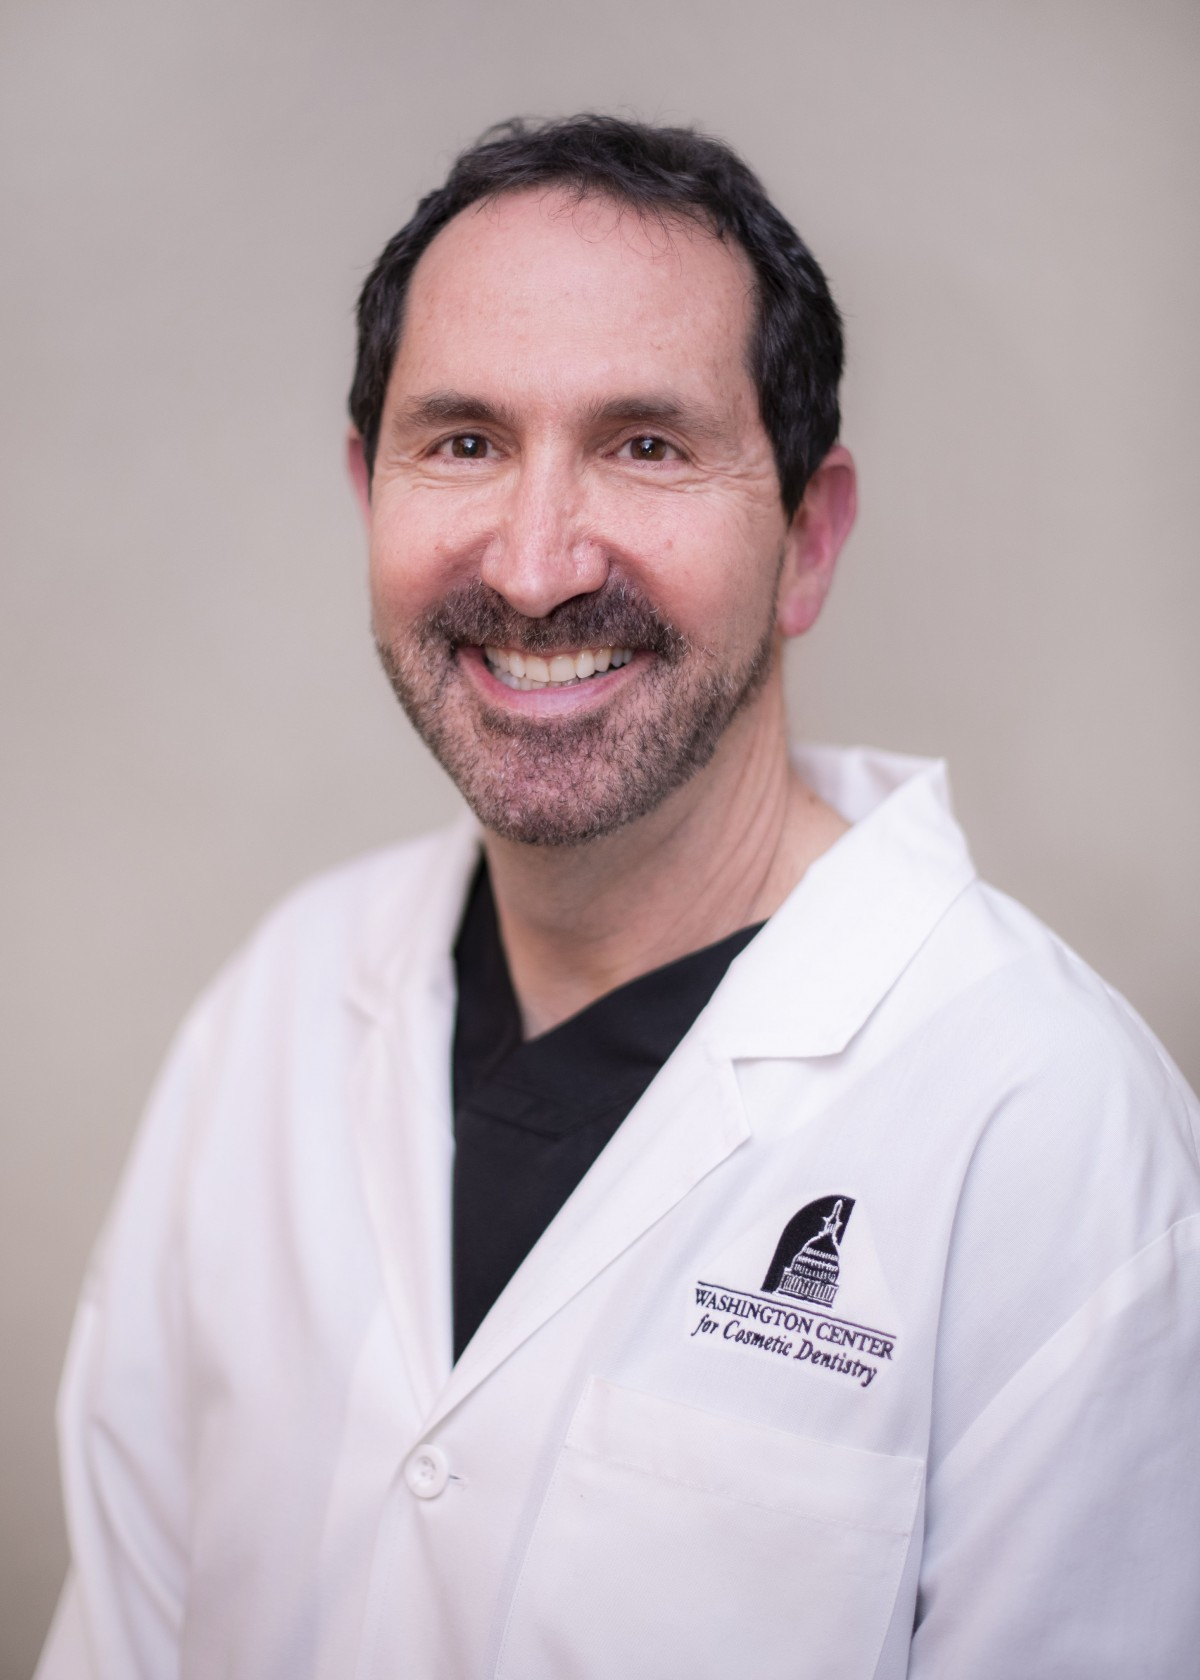 Top Rated Washington DC Dentist Offers World Class Dental Crowns